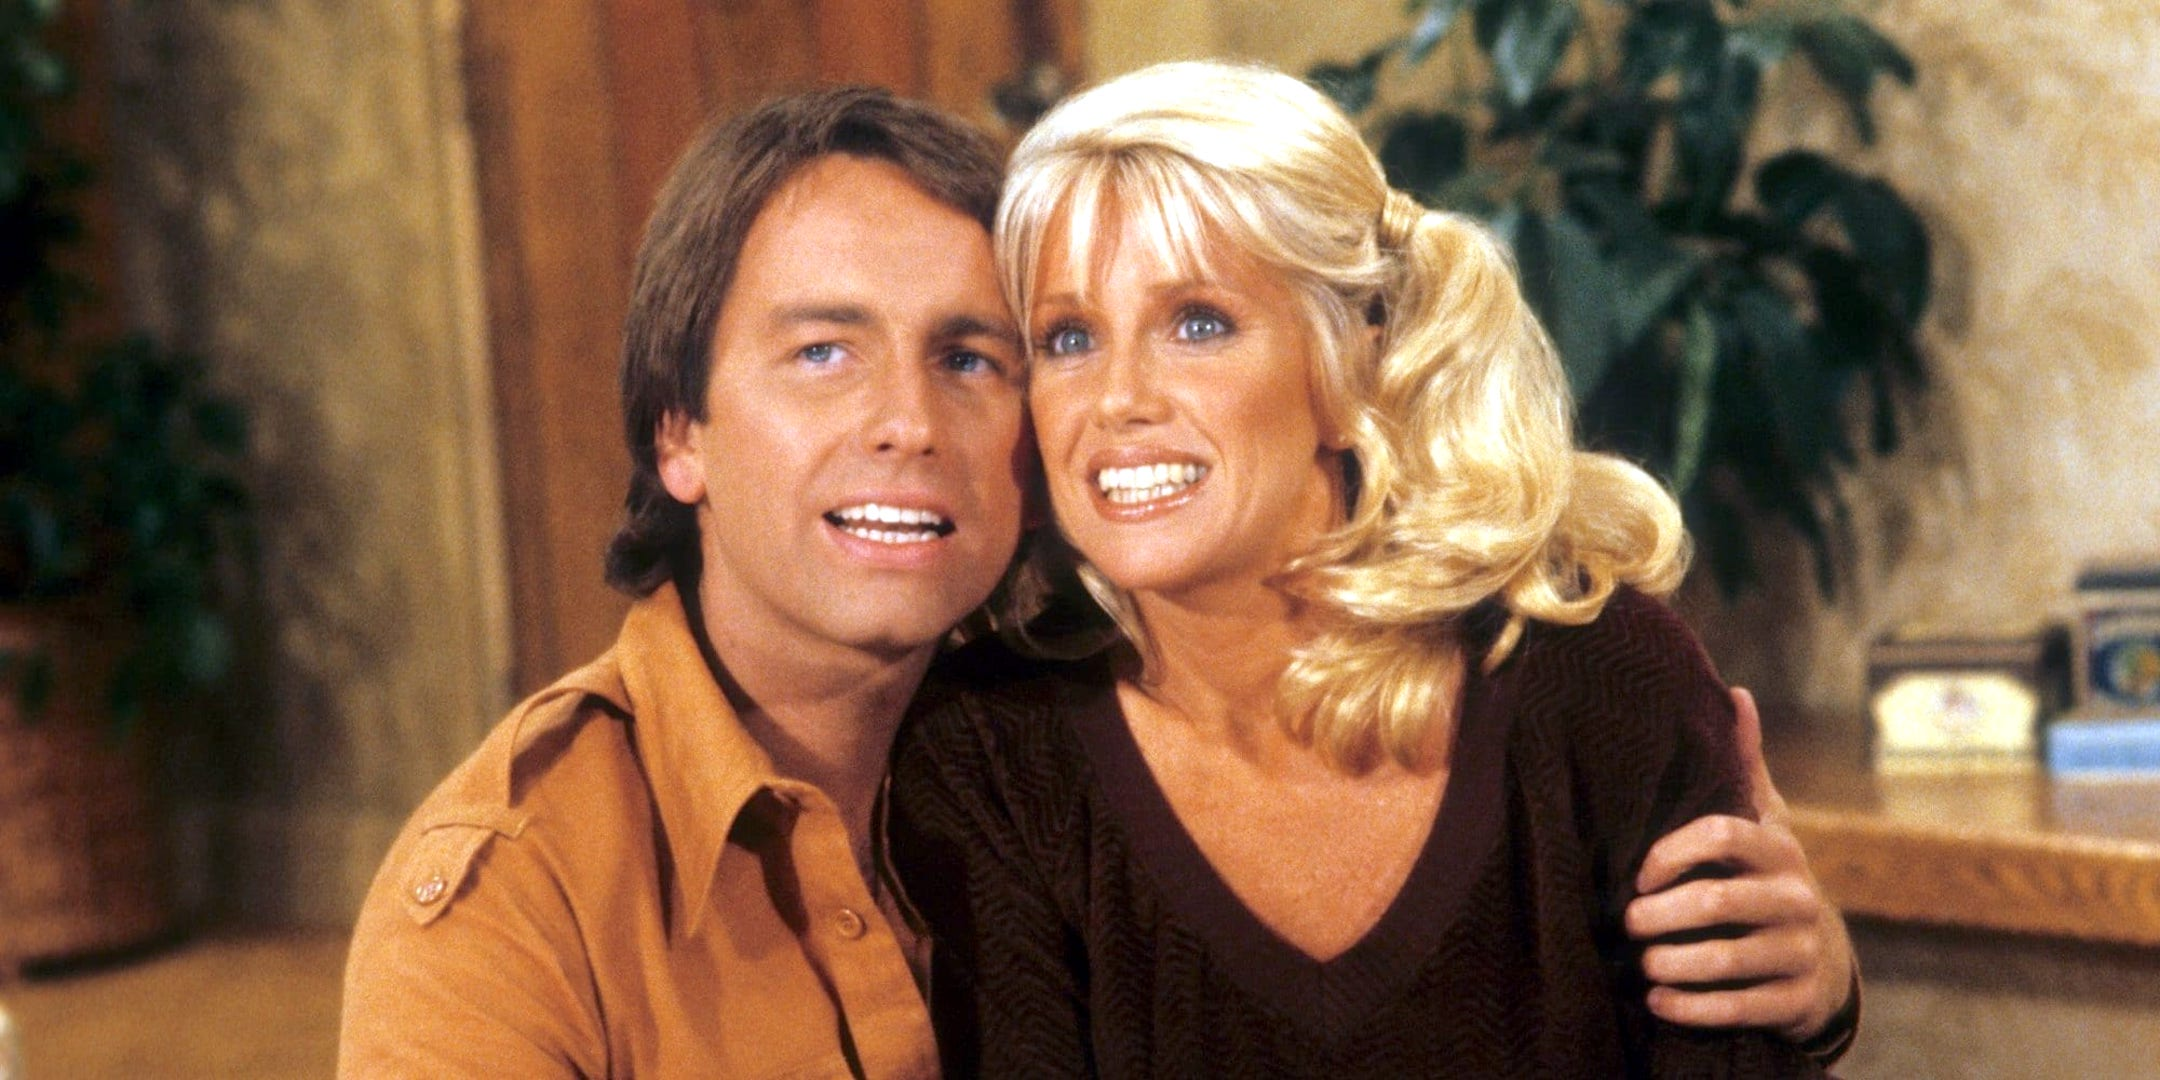 tv, Three's Company, john ritter as jack tripper, suzanne somers as chrissy snow, 70s, 80s, AMC